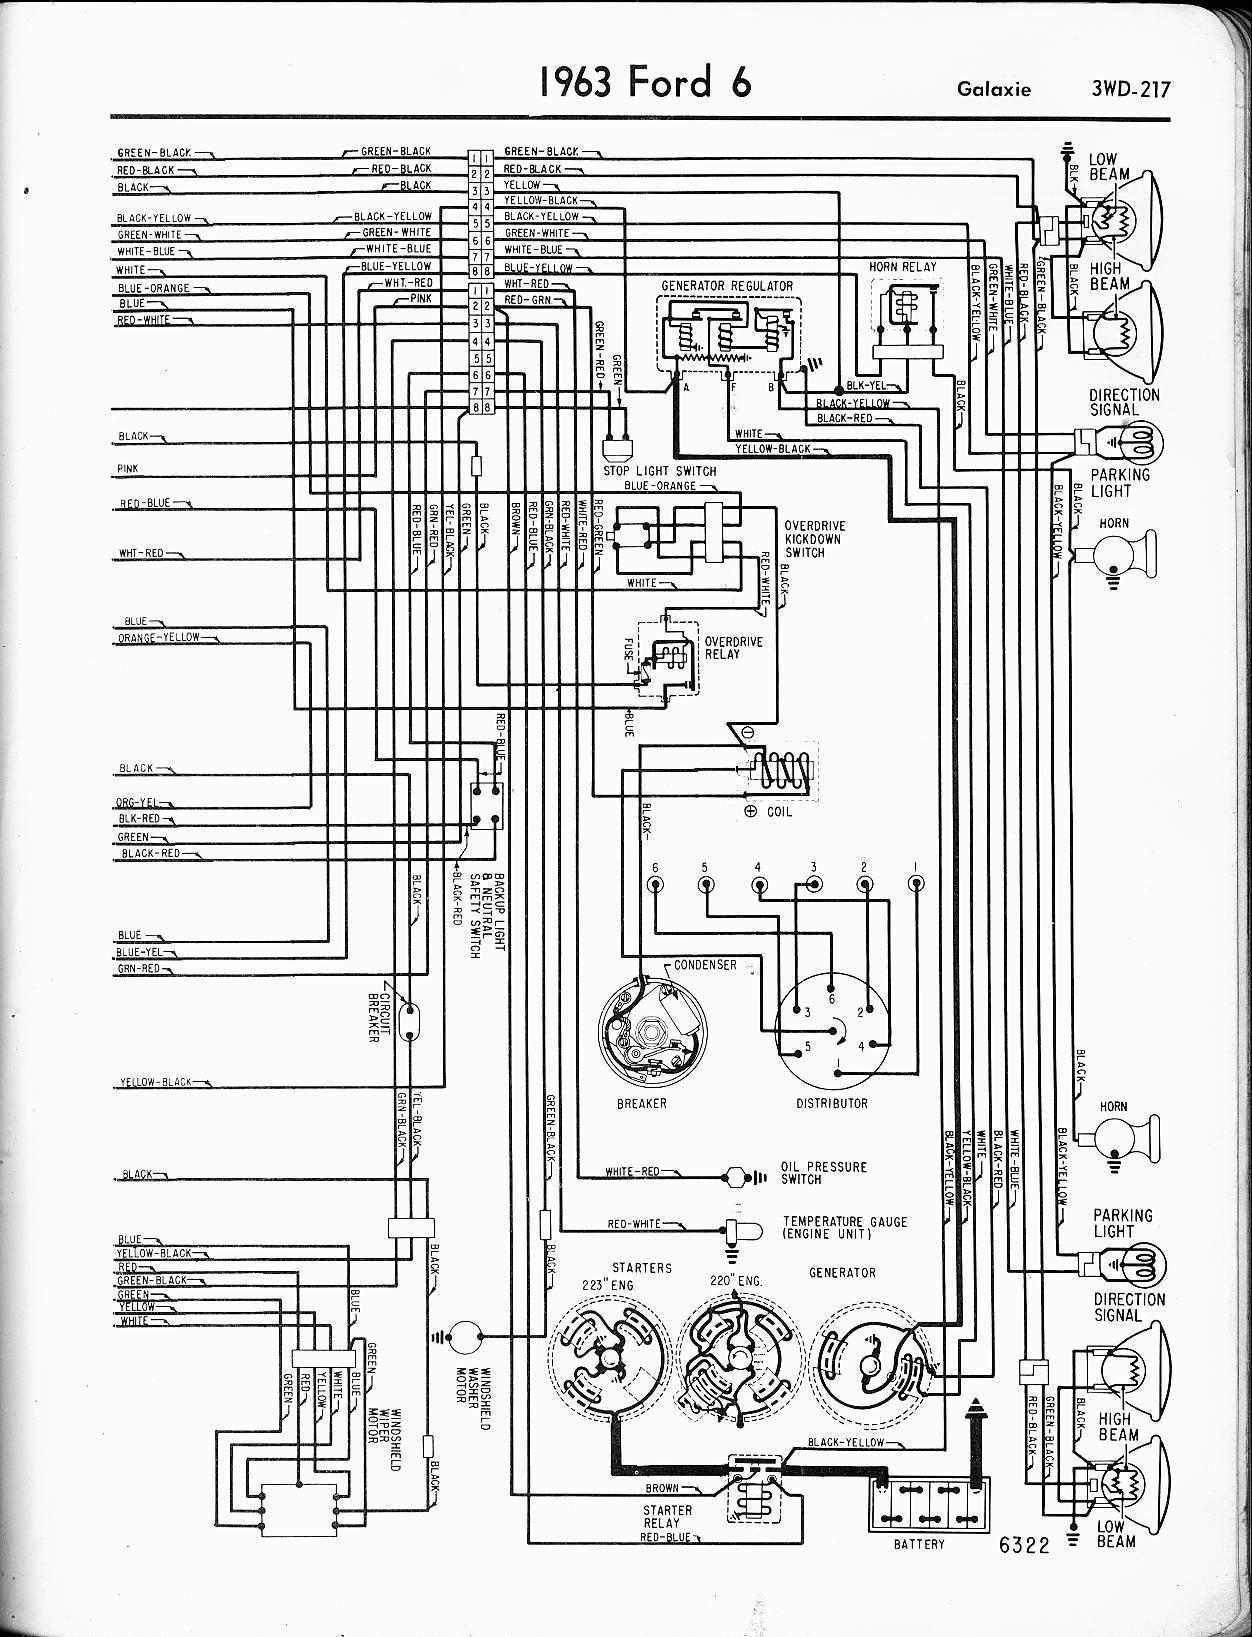 66 Ford Fairlane Wiring Diagrams Regulator Library 1966 Pontiac Galaxie Right